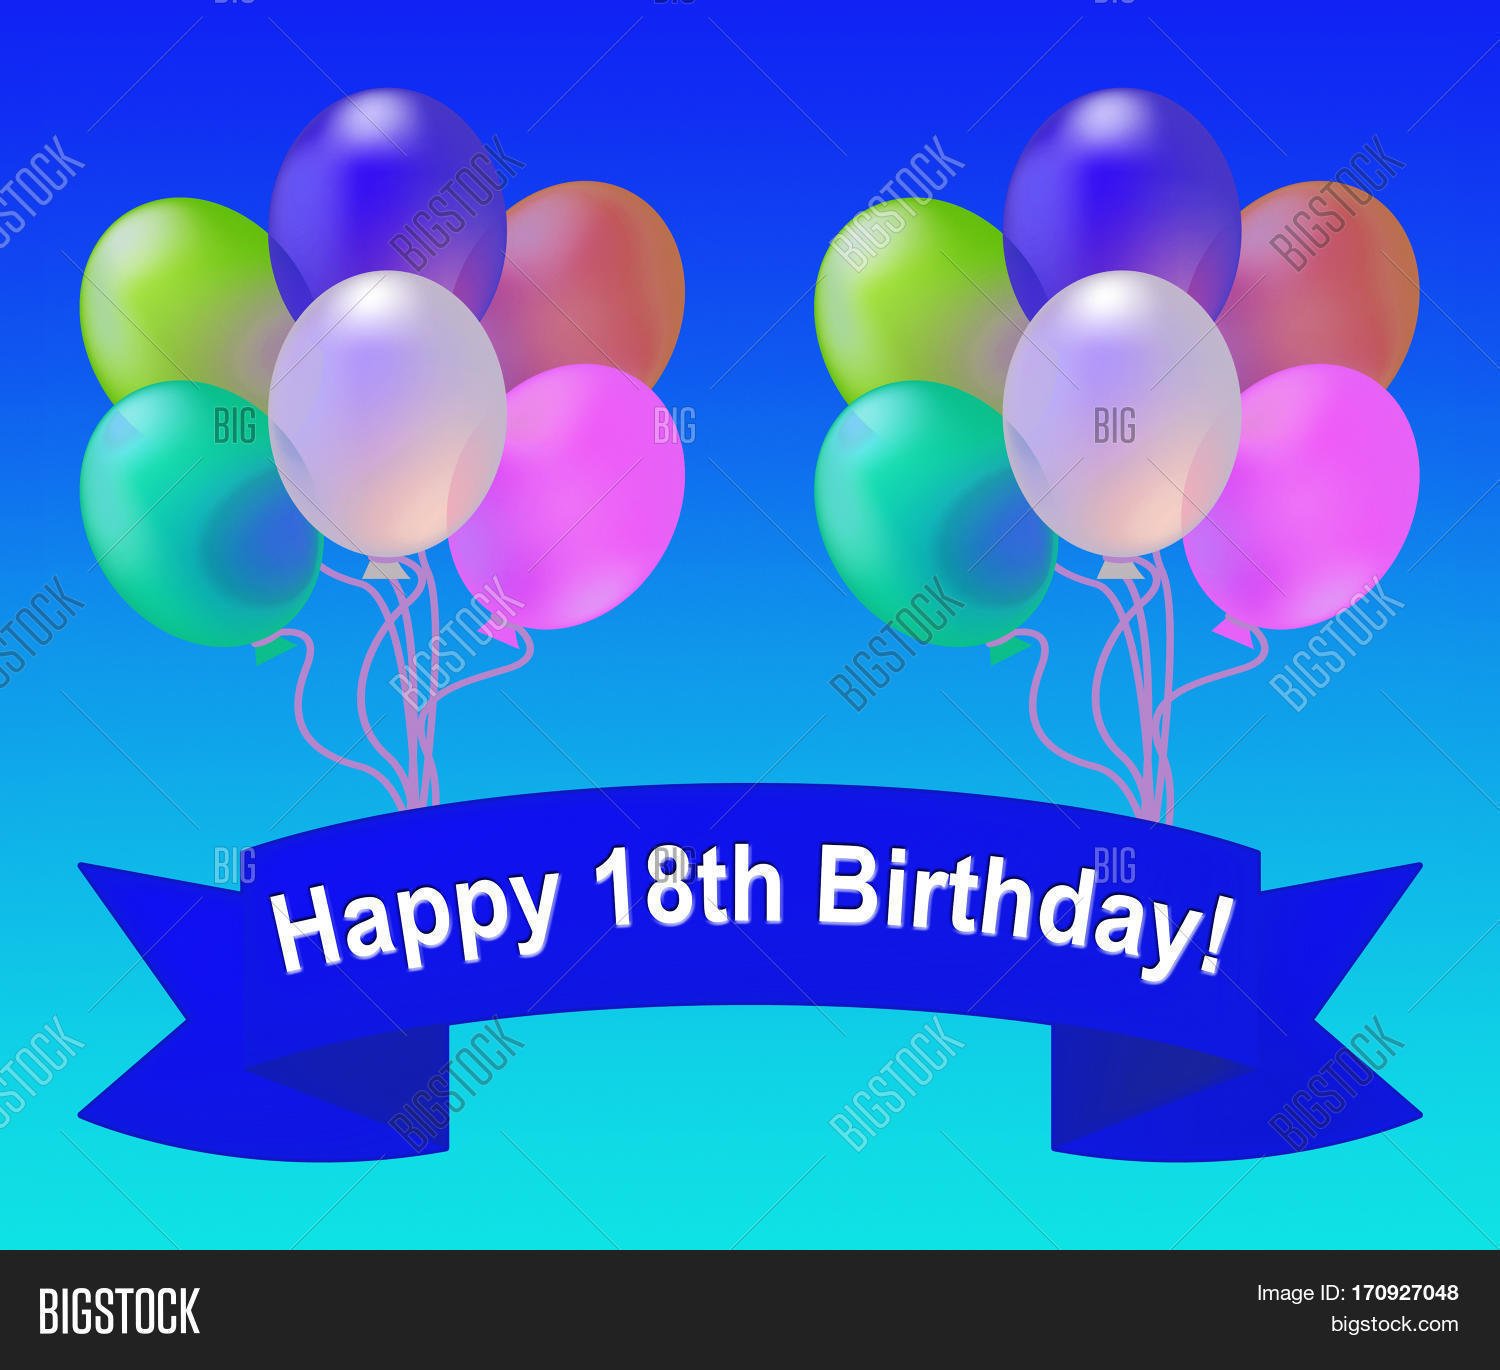 Happy Eighteenth Birthday Balloons Means 18th Party Celebration 3d Illustration